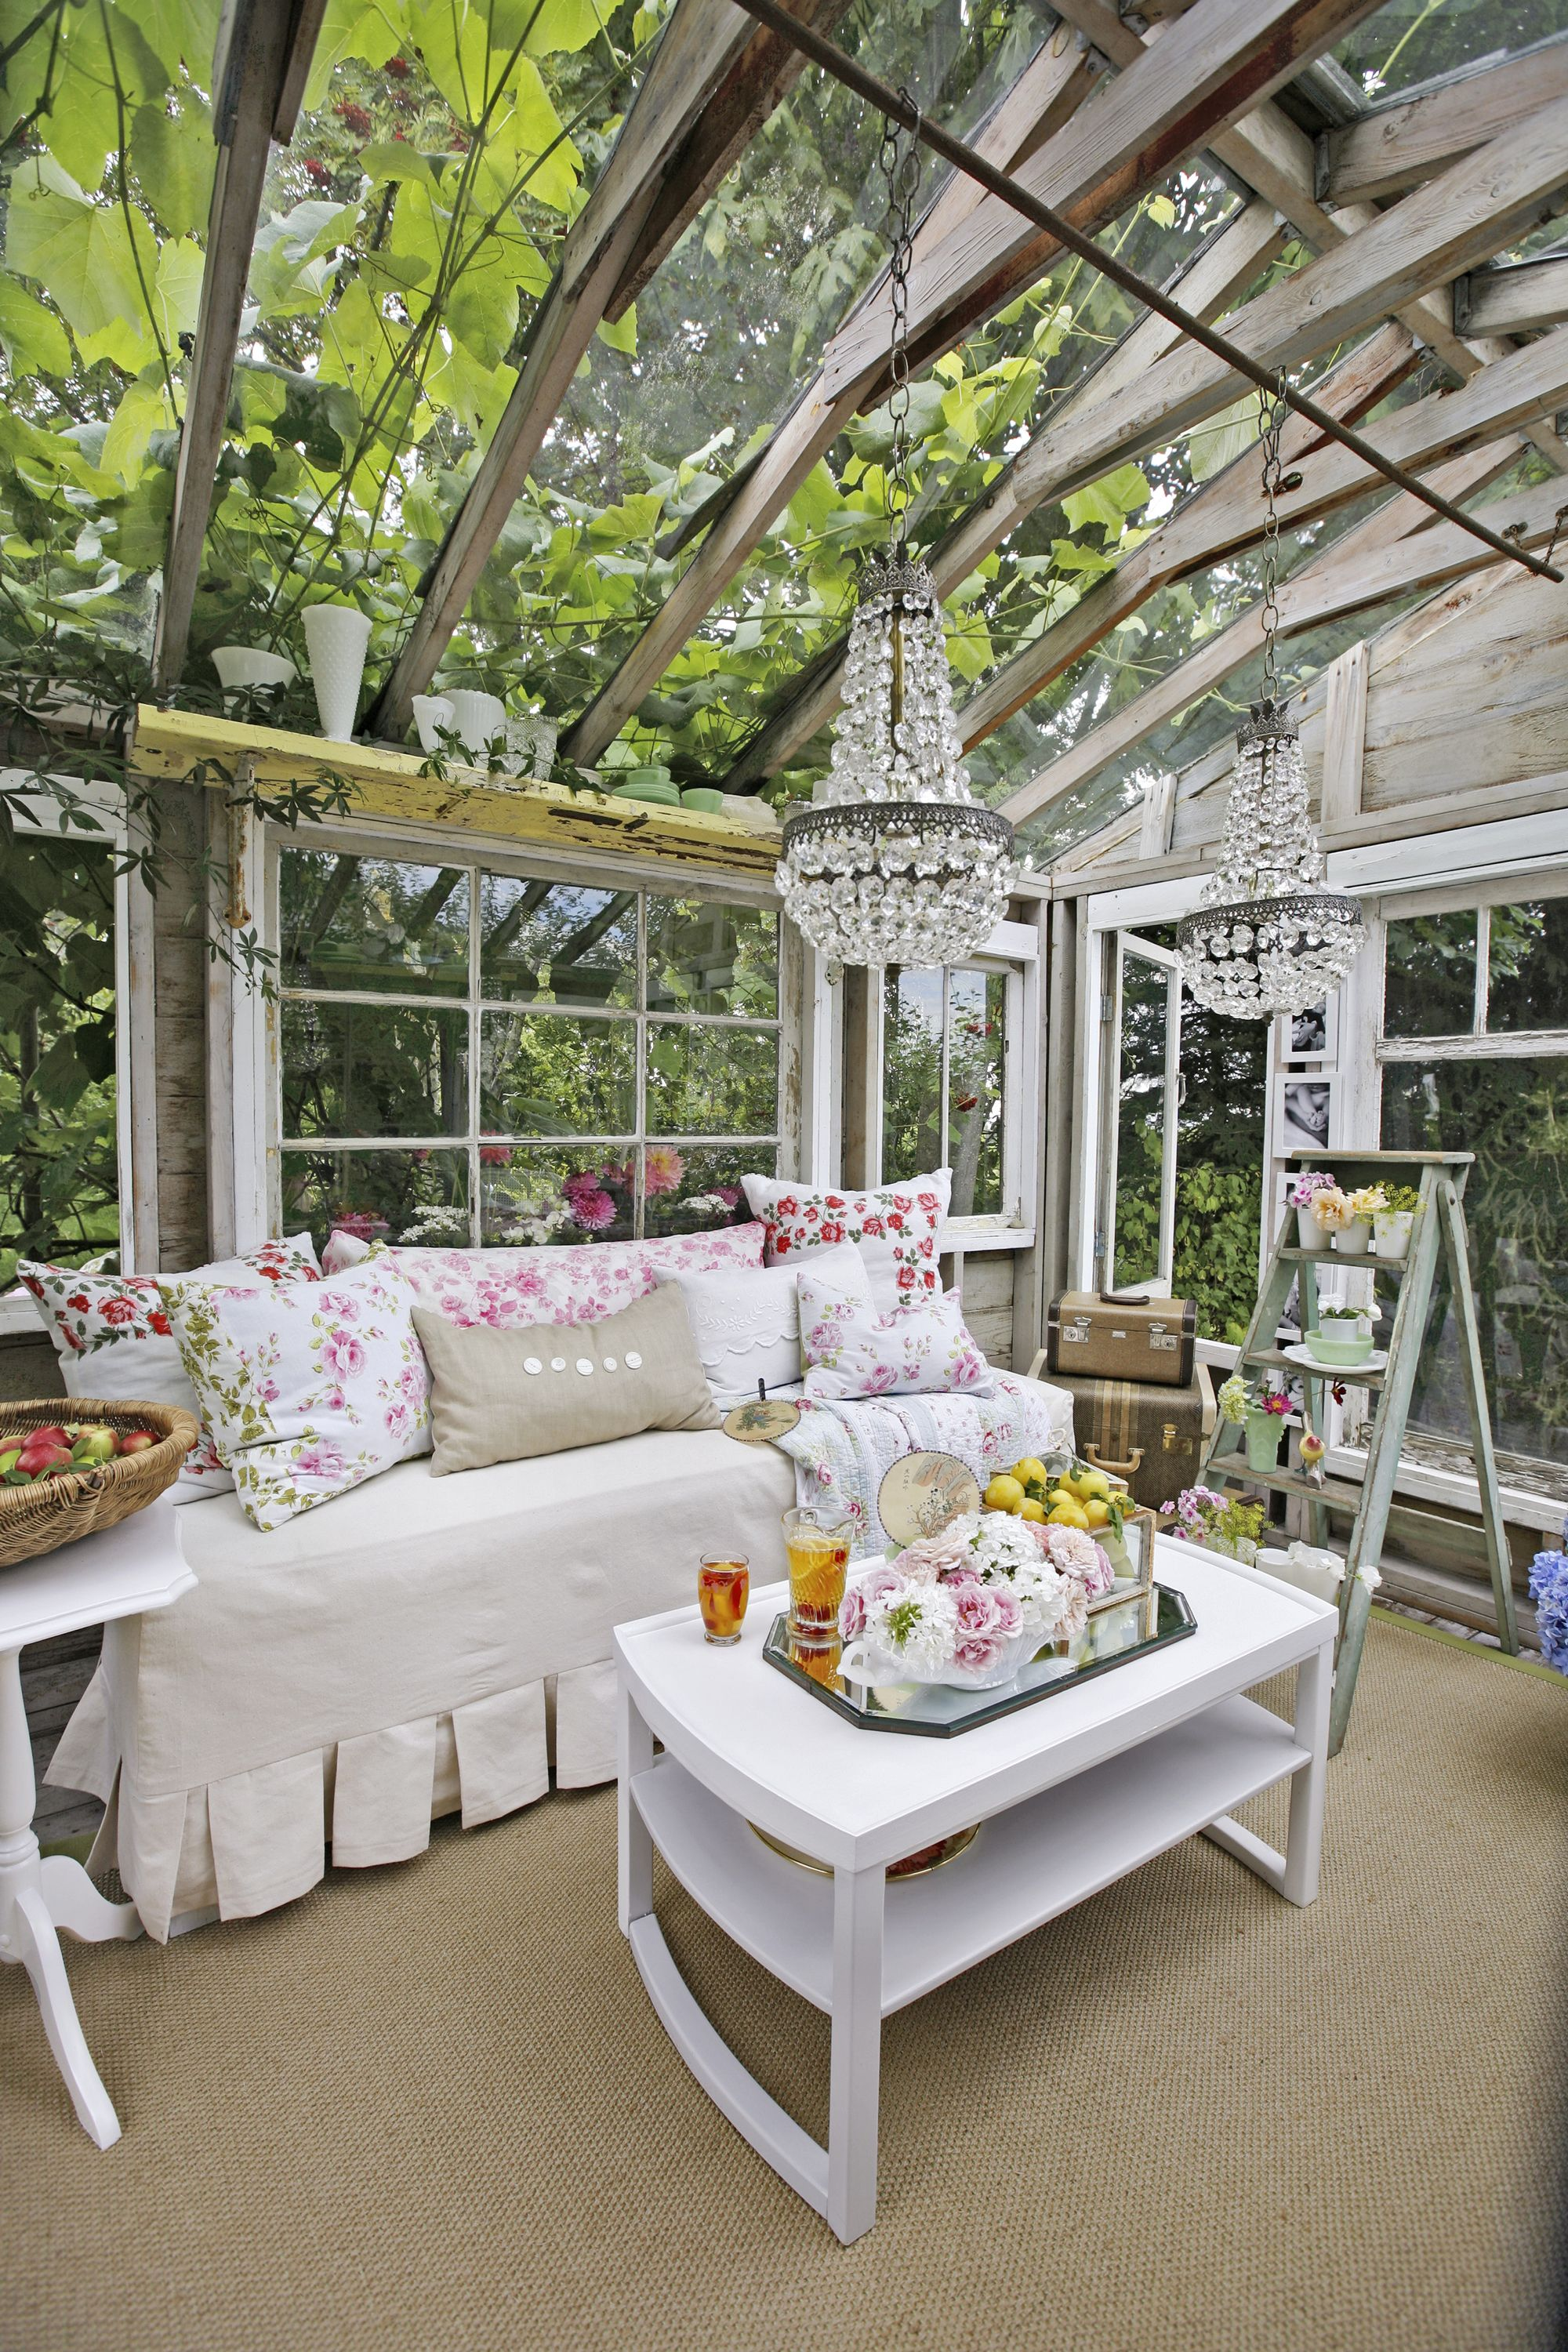 image : greenhouse decorating ideas - www.pureclipart.com